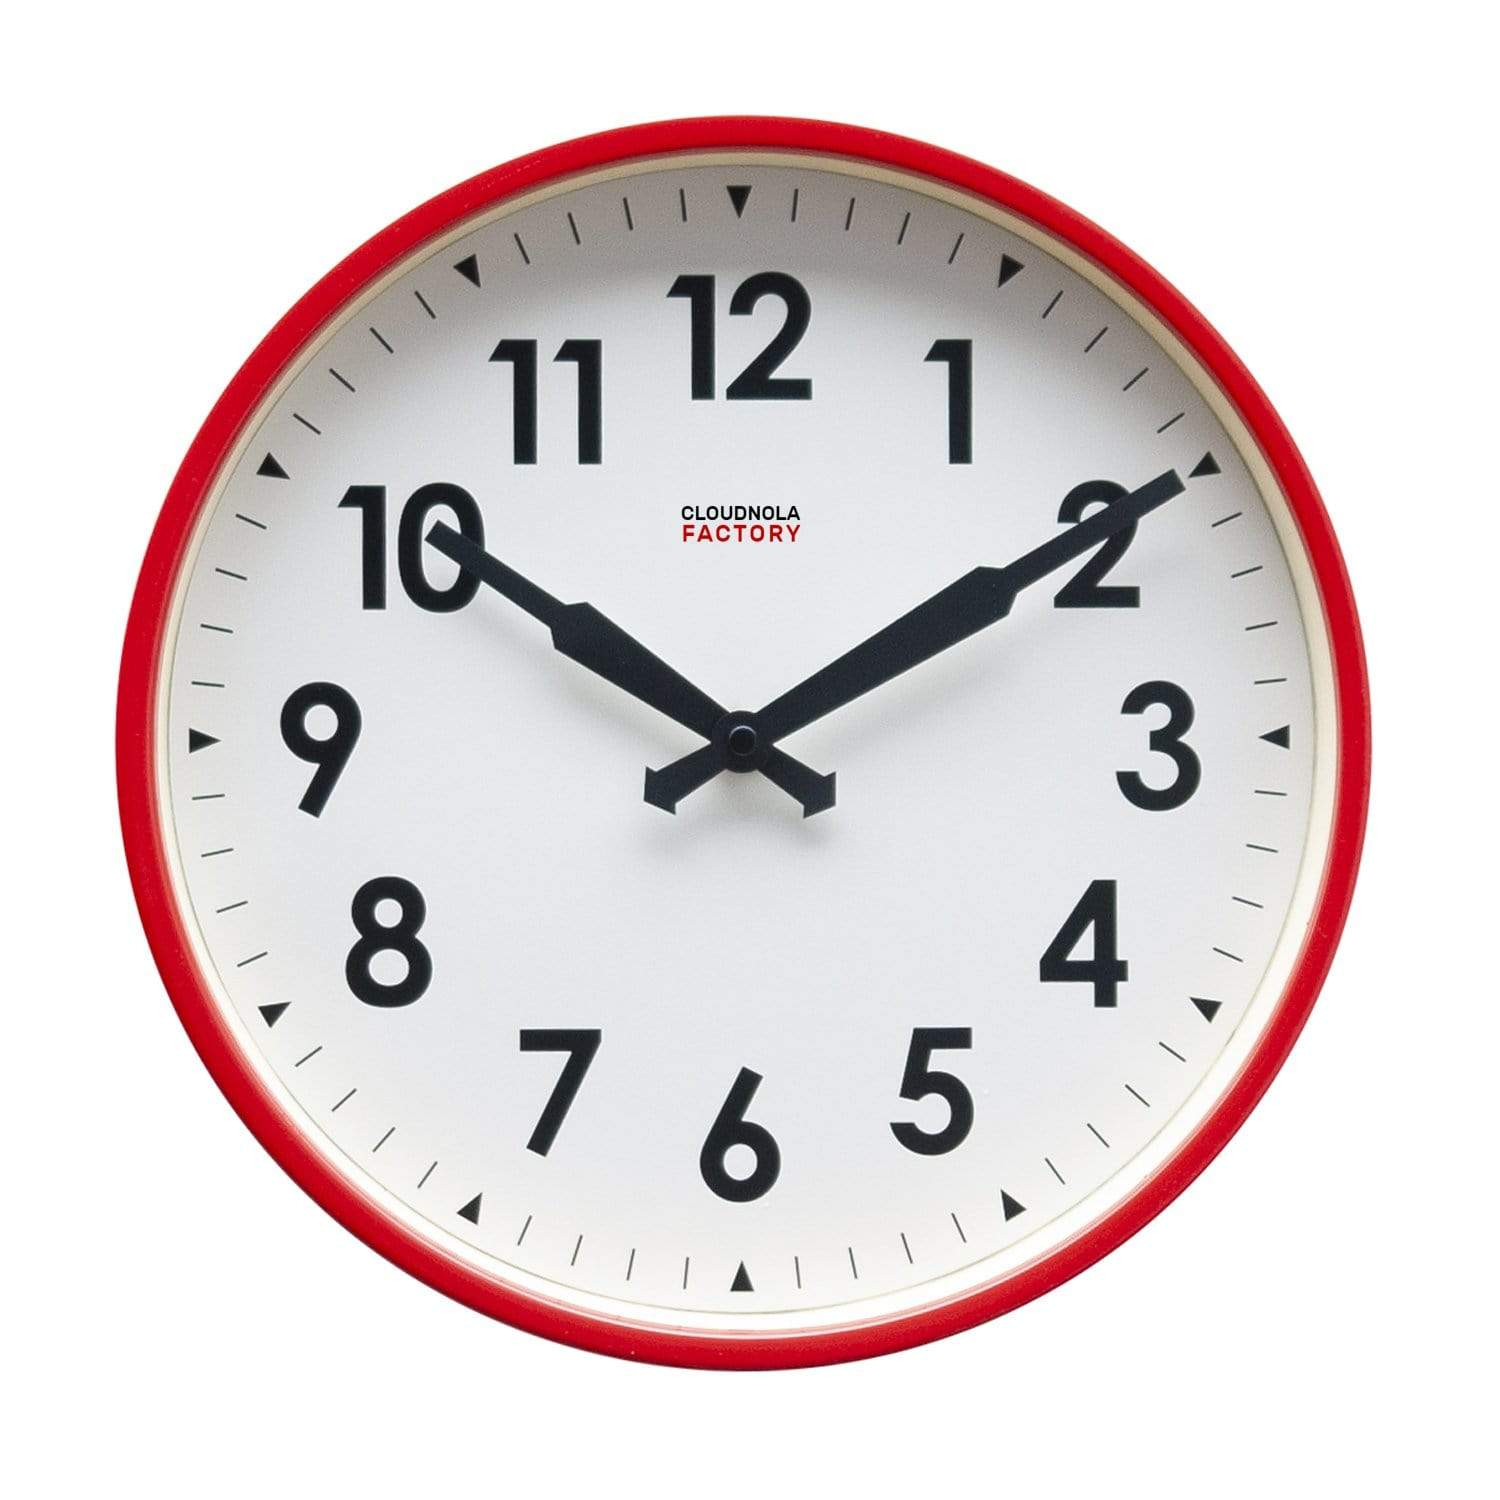 cloudnola Wall Clock Factory Red Numbers Clock 30cm / 11.81 inches